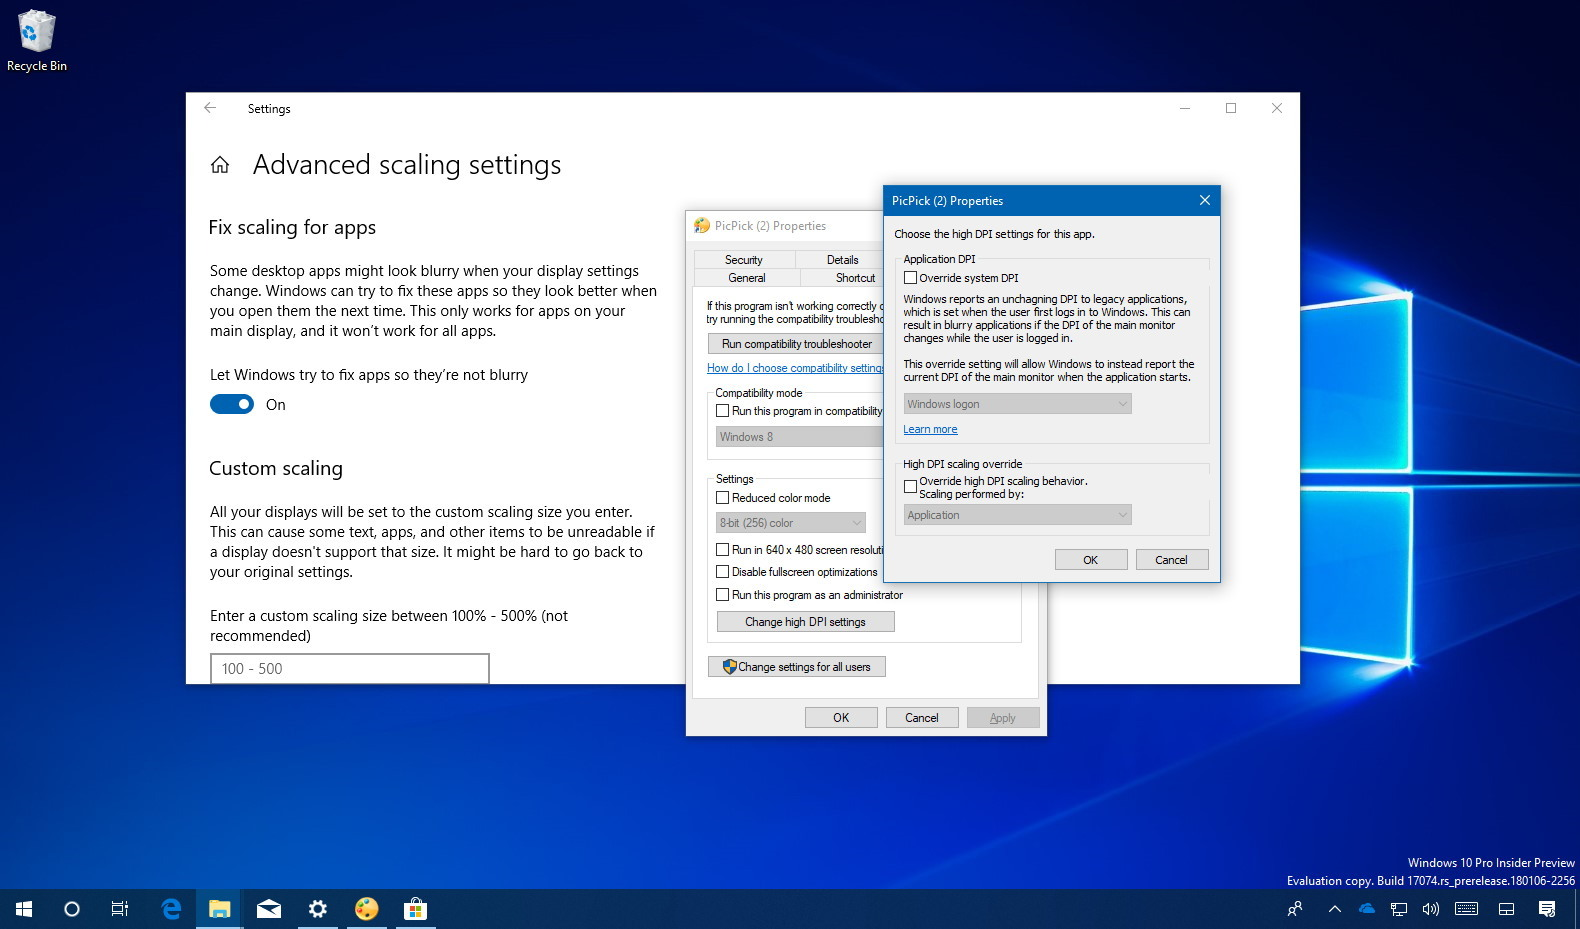 Fixing scaling causing blurry apps on Windows 10